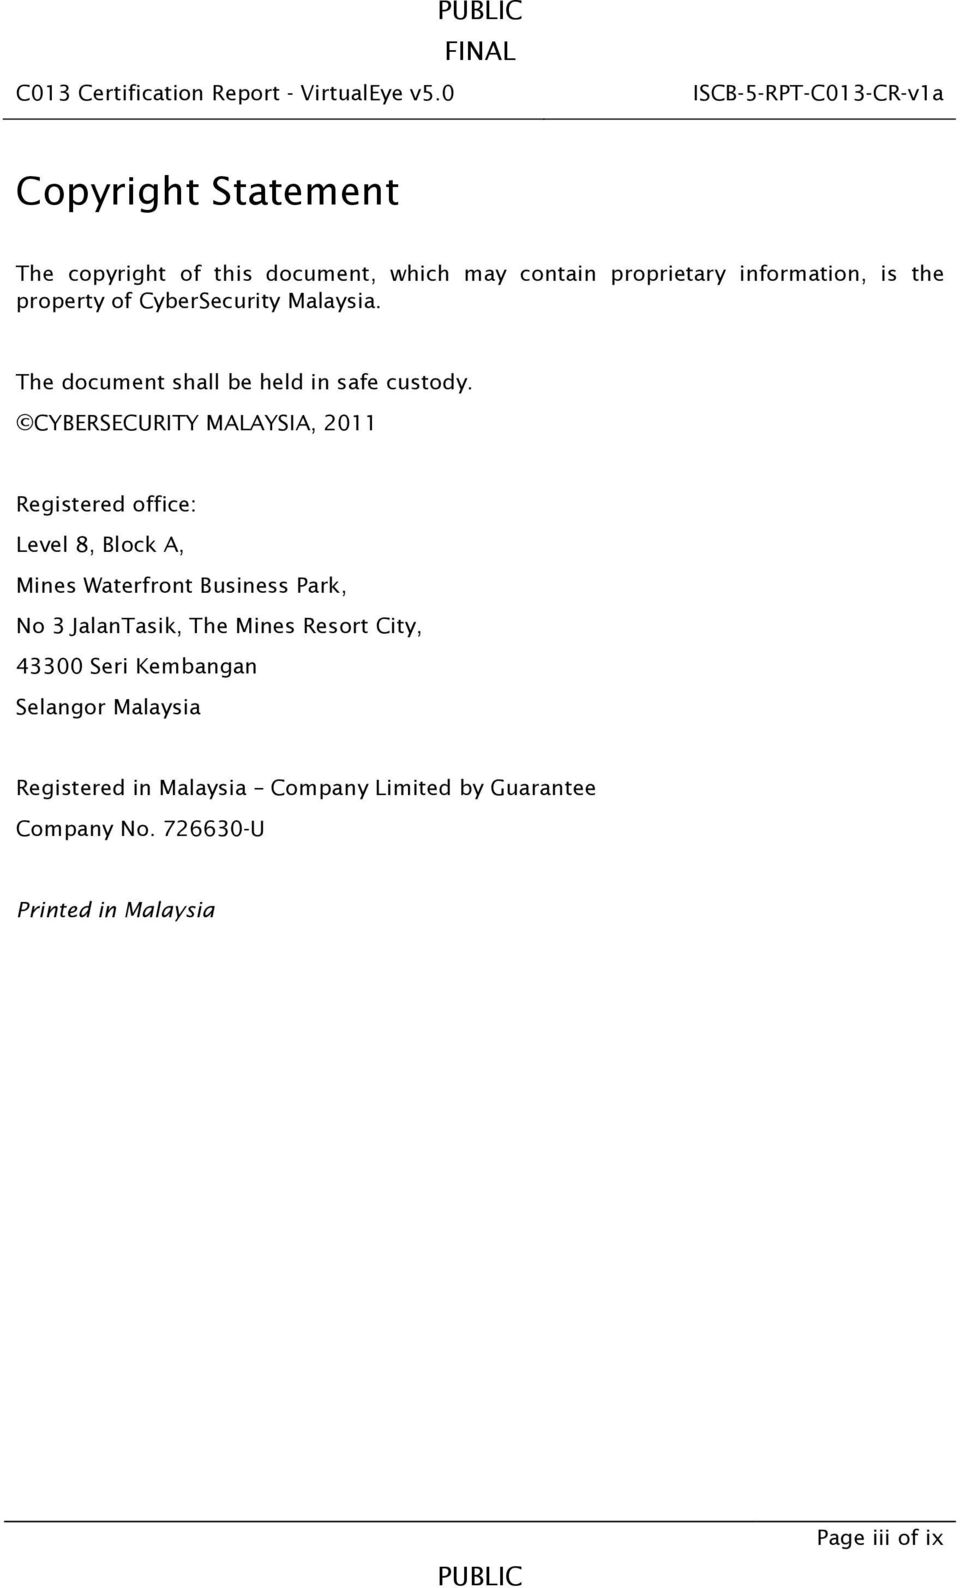 CYBERSECURITY MALAYSIA, 2011 Registered office: Level 8, Block A, Mines Waterfront Business Park, No 3 JalanTasik,